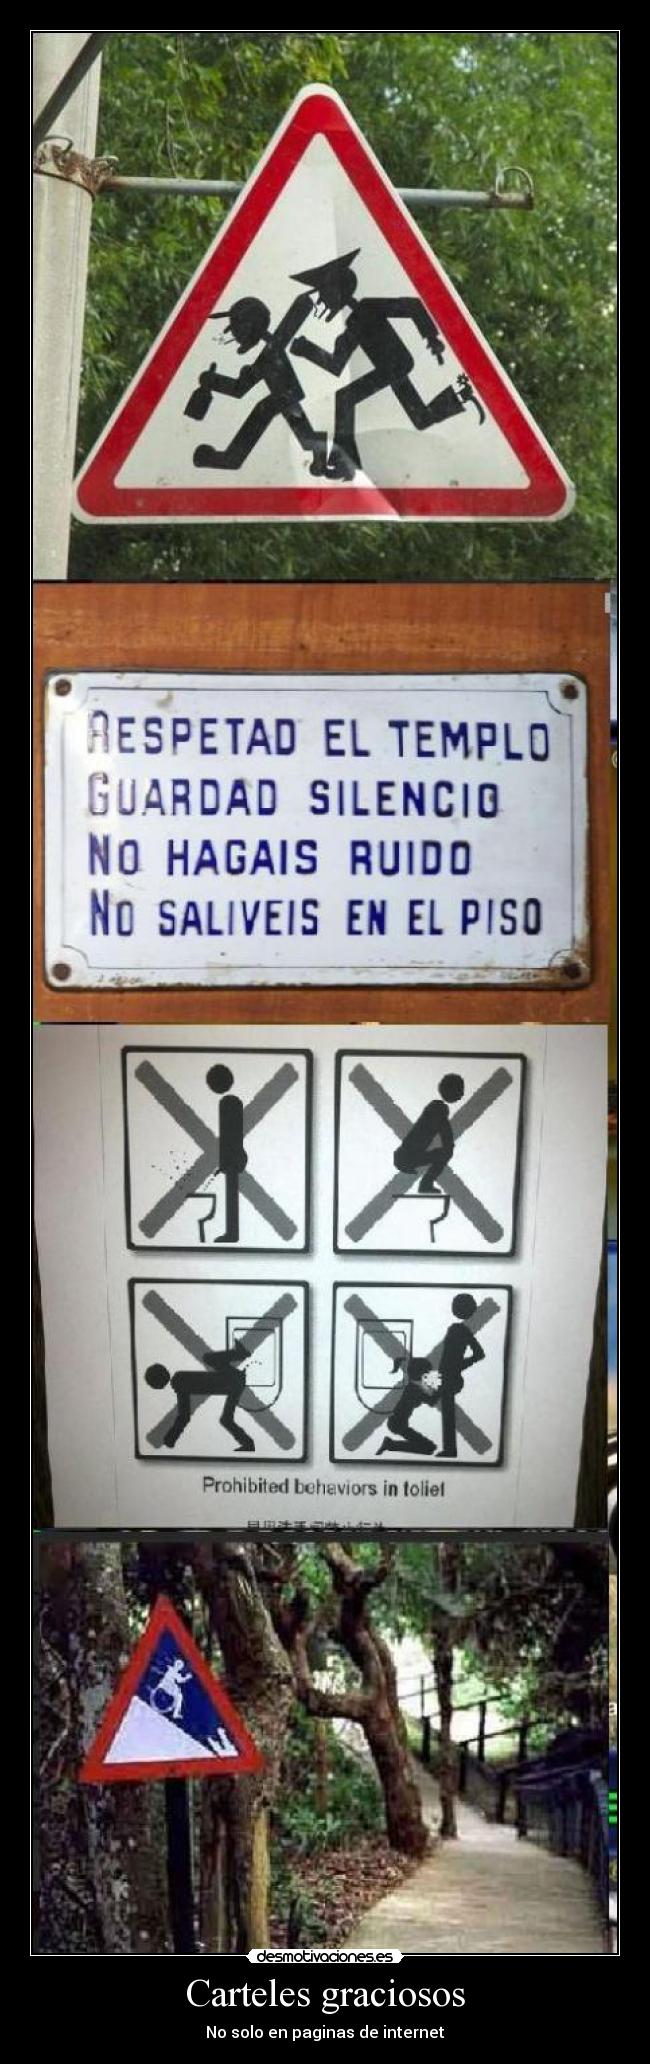 Carteles graciosos - No solo en paginas de internet